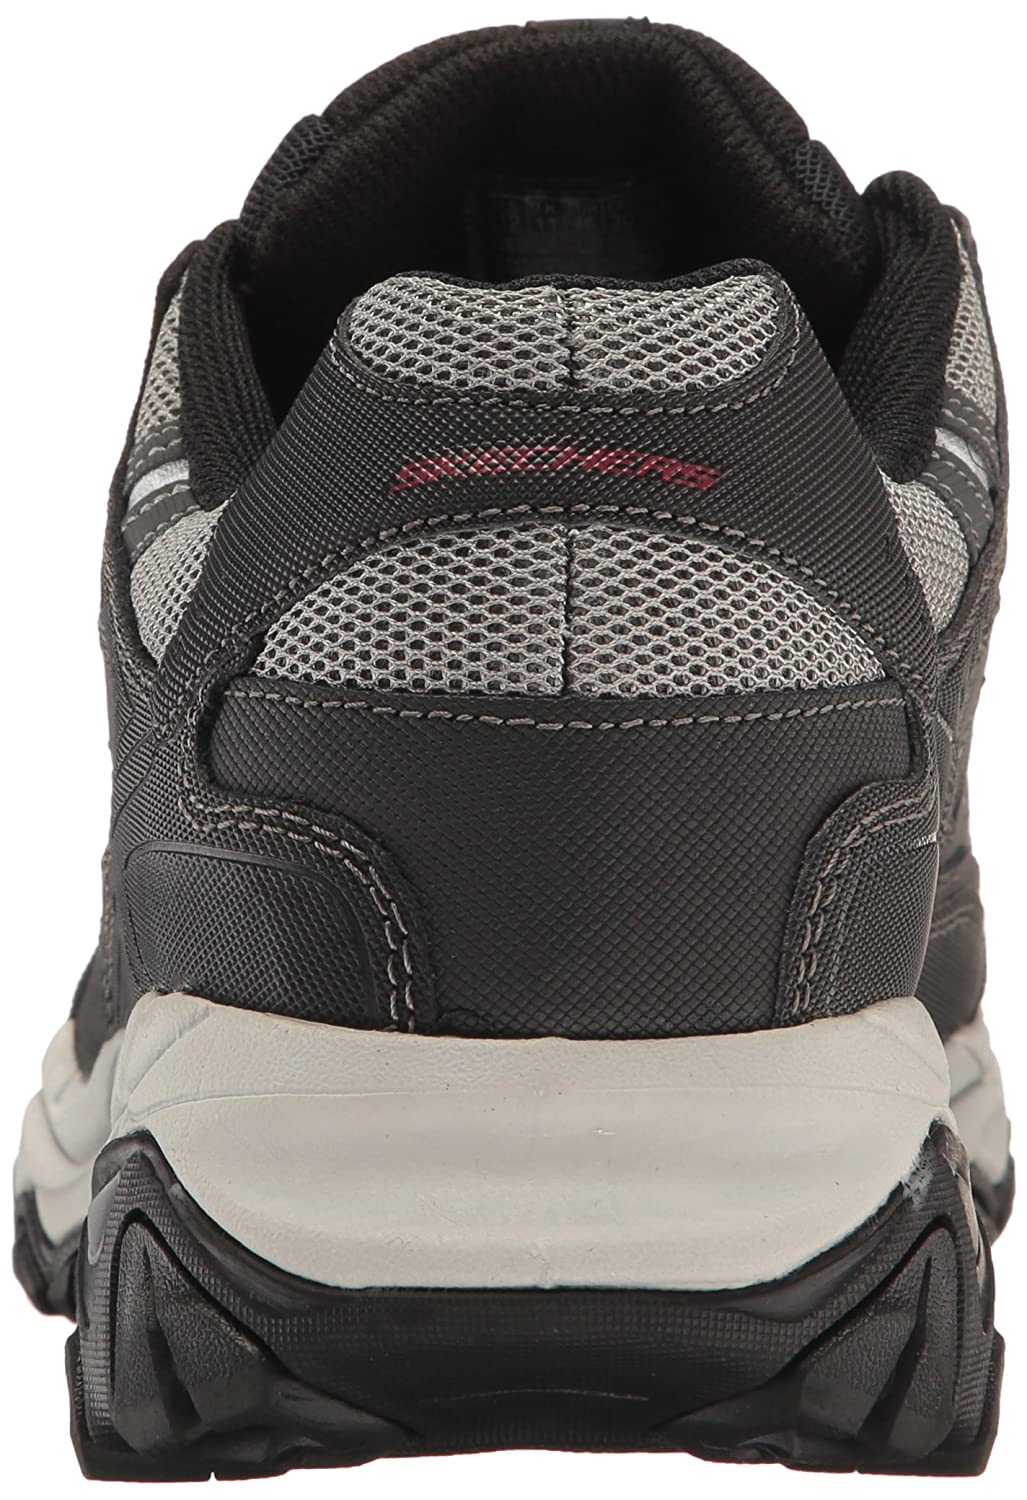 Skechers-Afterburn-Memory-Foam-M-Fit-Men-039-s-Sport-After-Burn-Sneakers-Shoes thumbnail 43